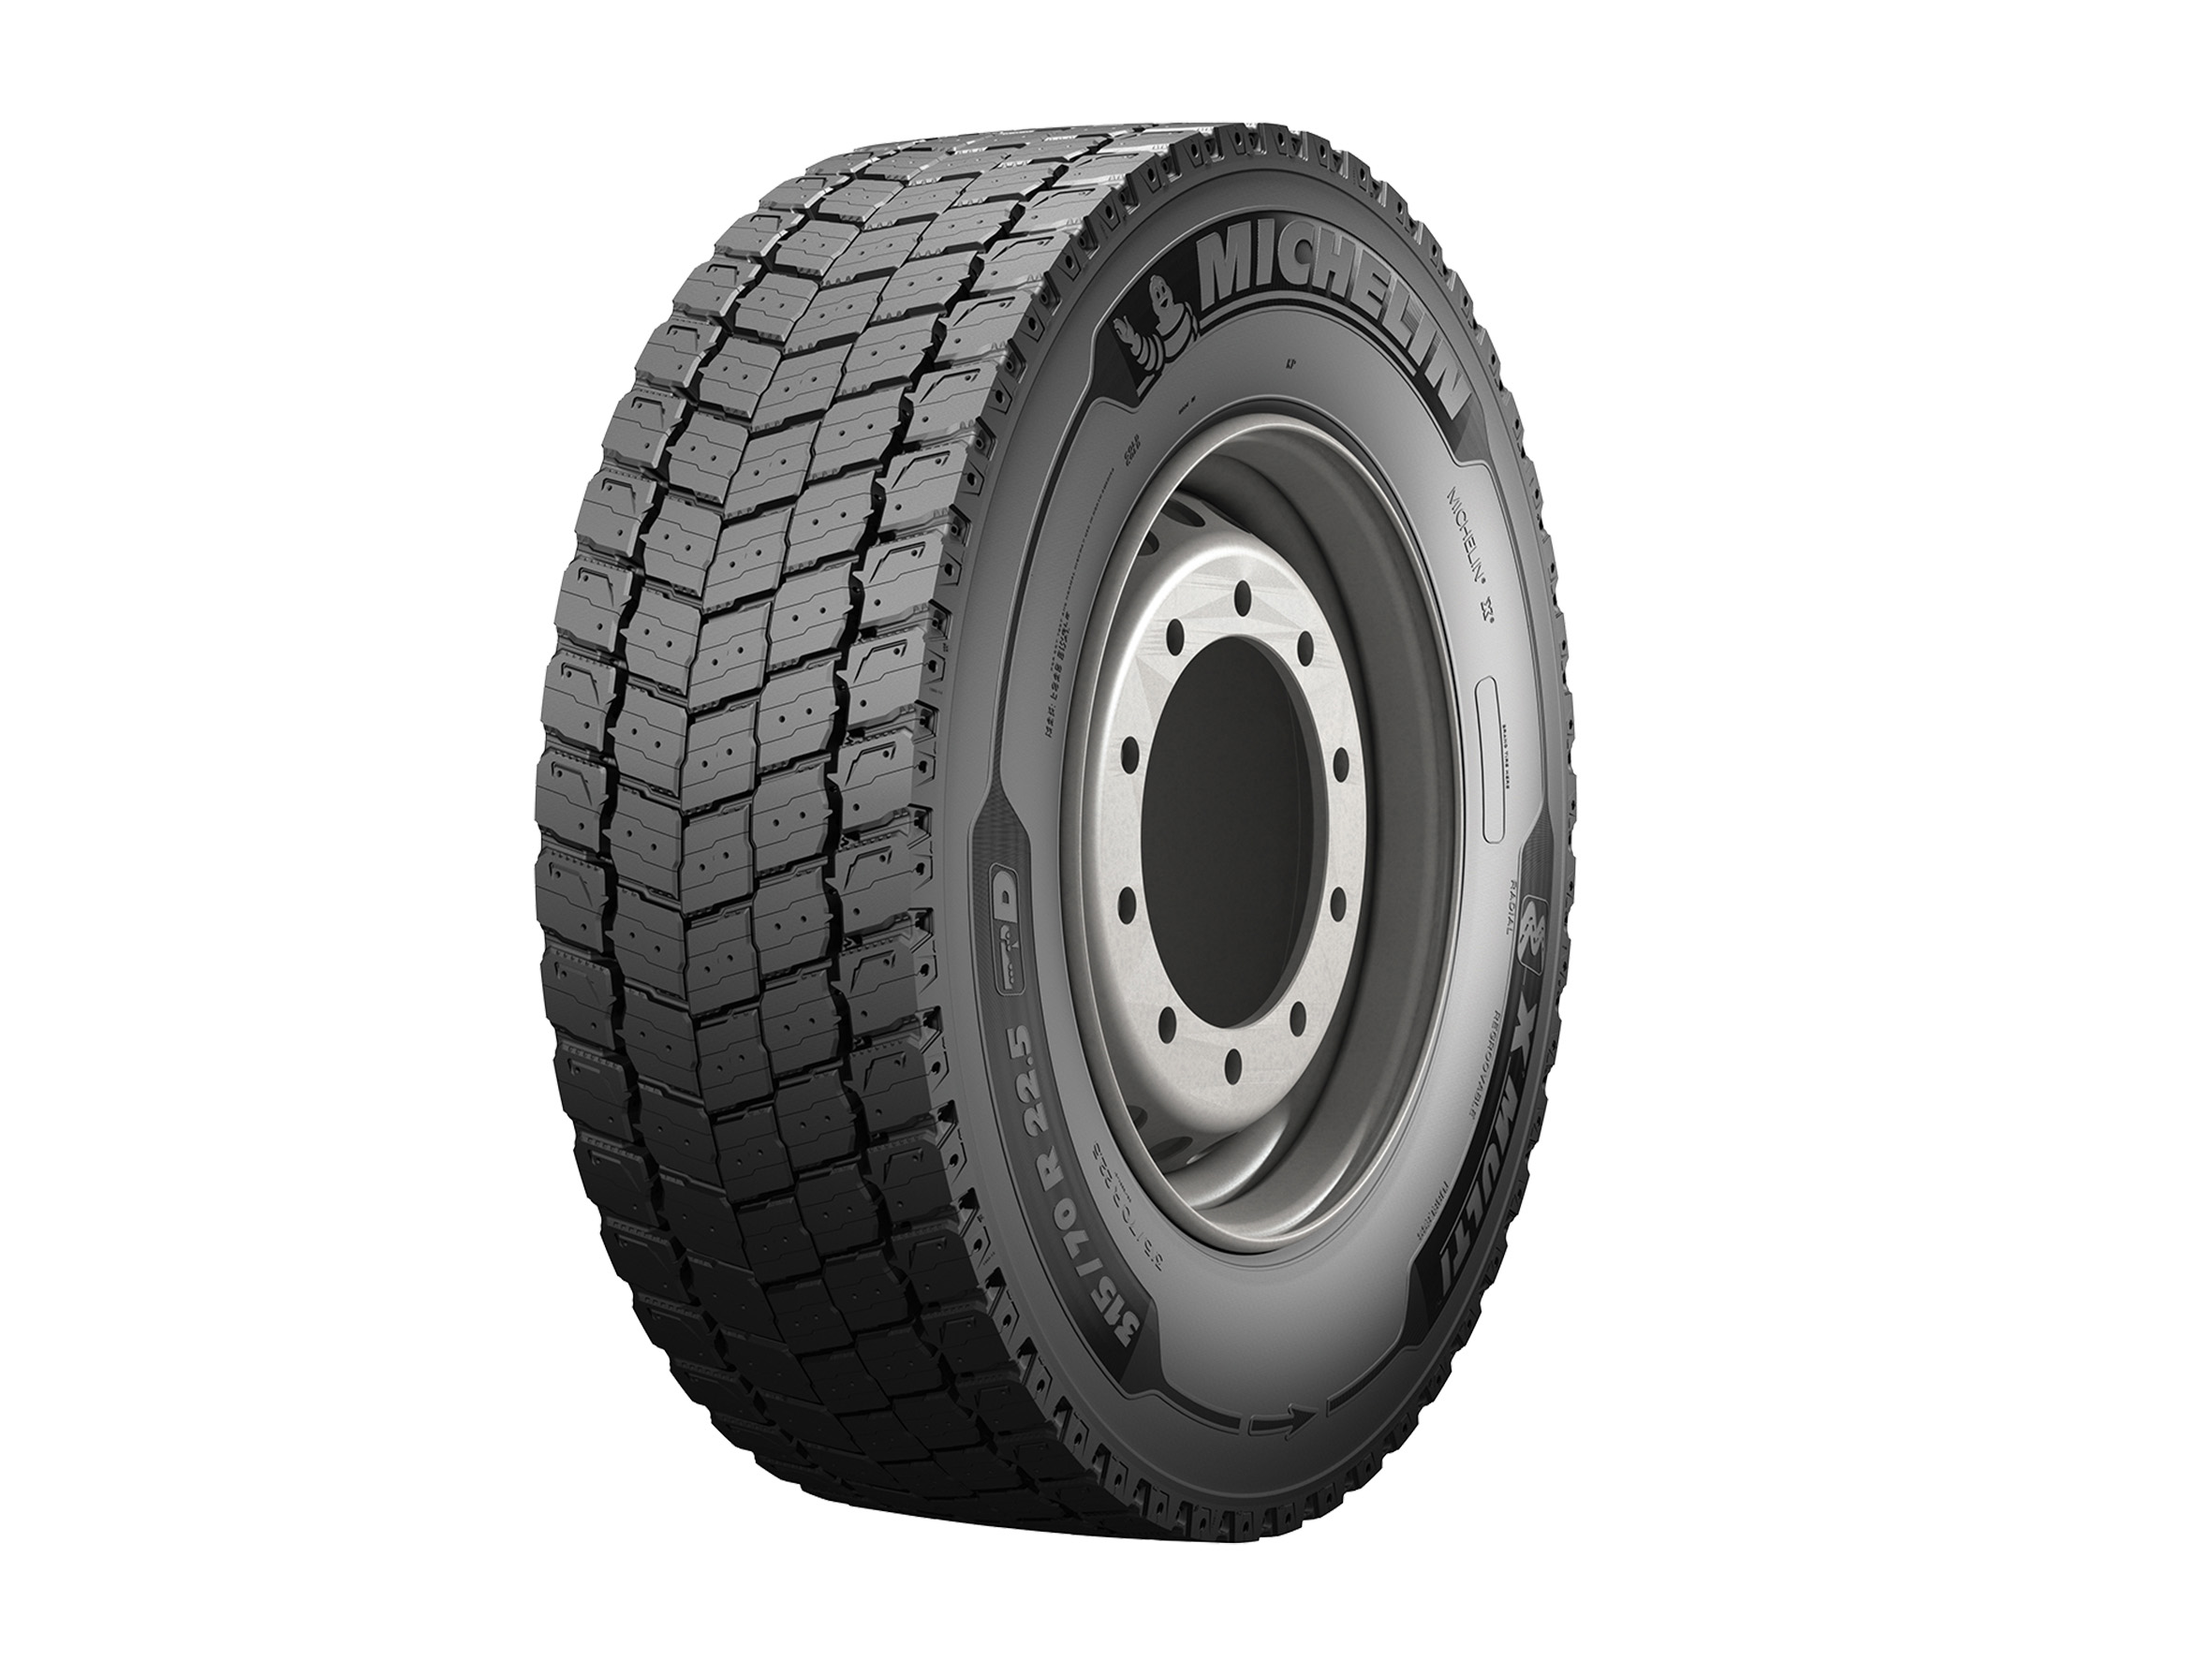 Anvelopa  MICHELIN X MULTI D  235/75R17.5 132/130M